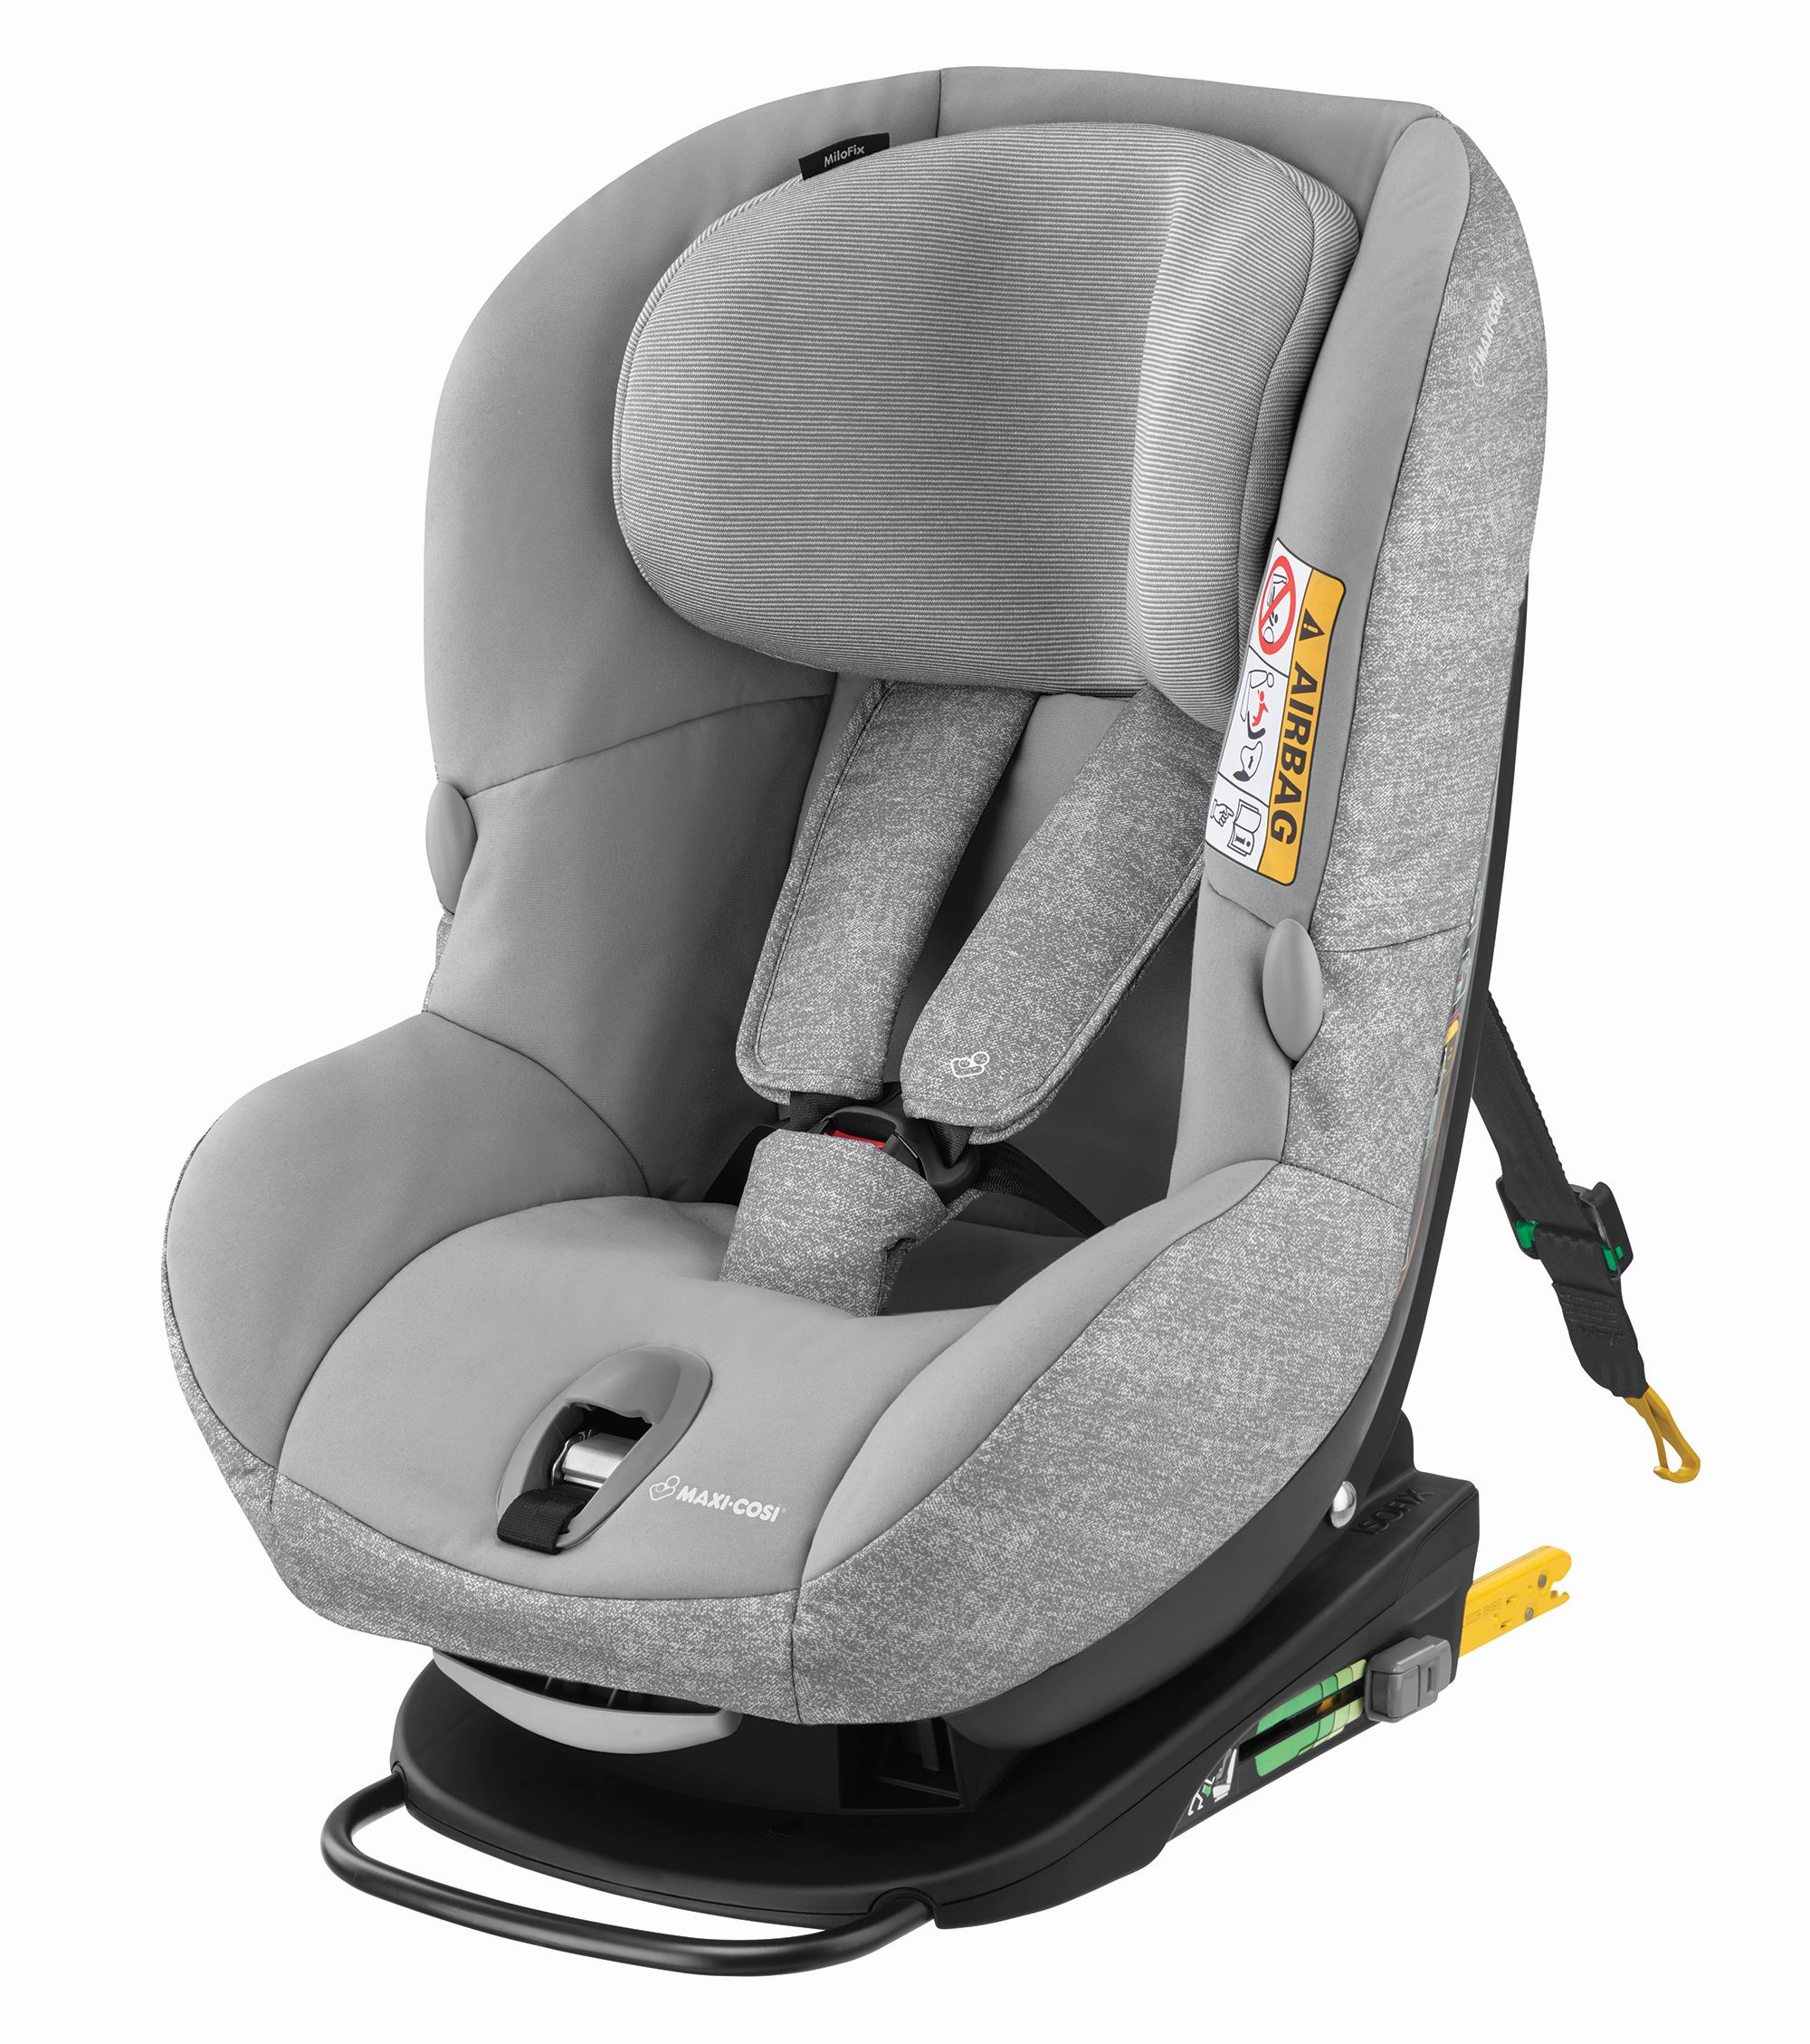 maxi cosi child car seat milofix 2018 nomad grey buy at kidsroom car seats isofix child. Black Bedroom Furniture Sets. Home Design Ideas